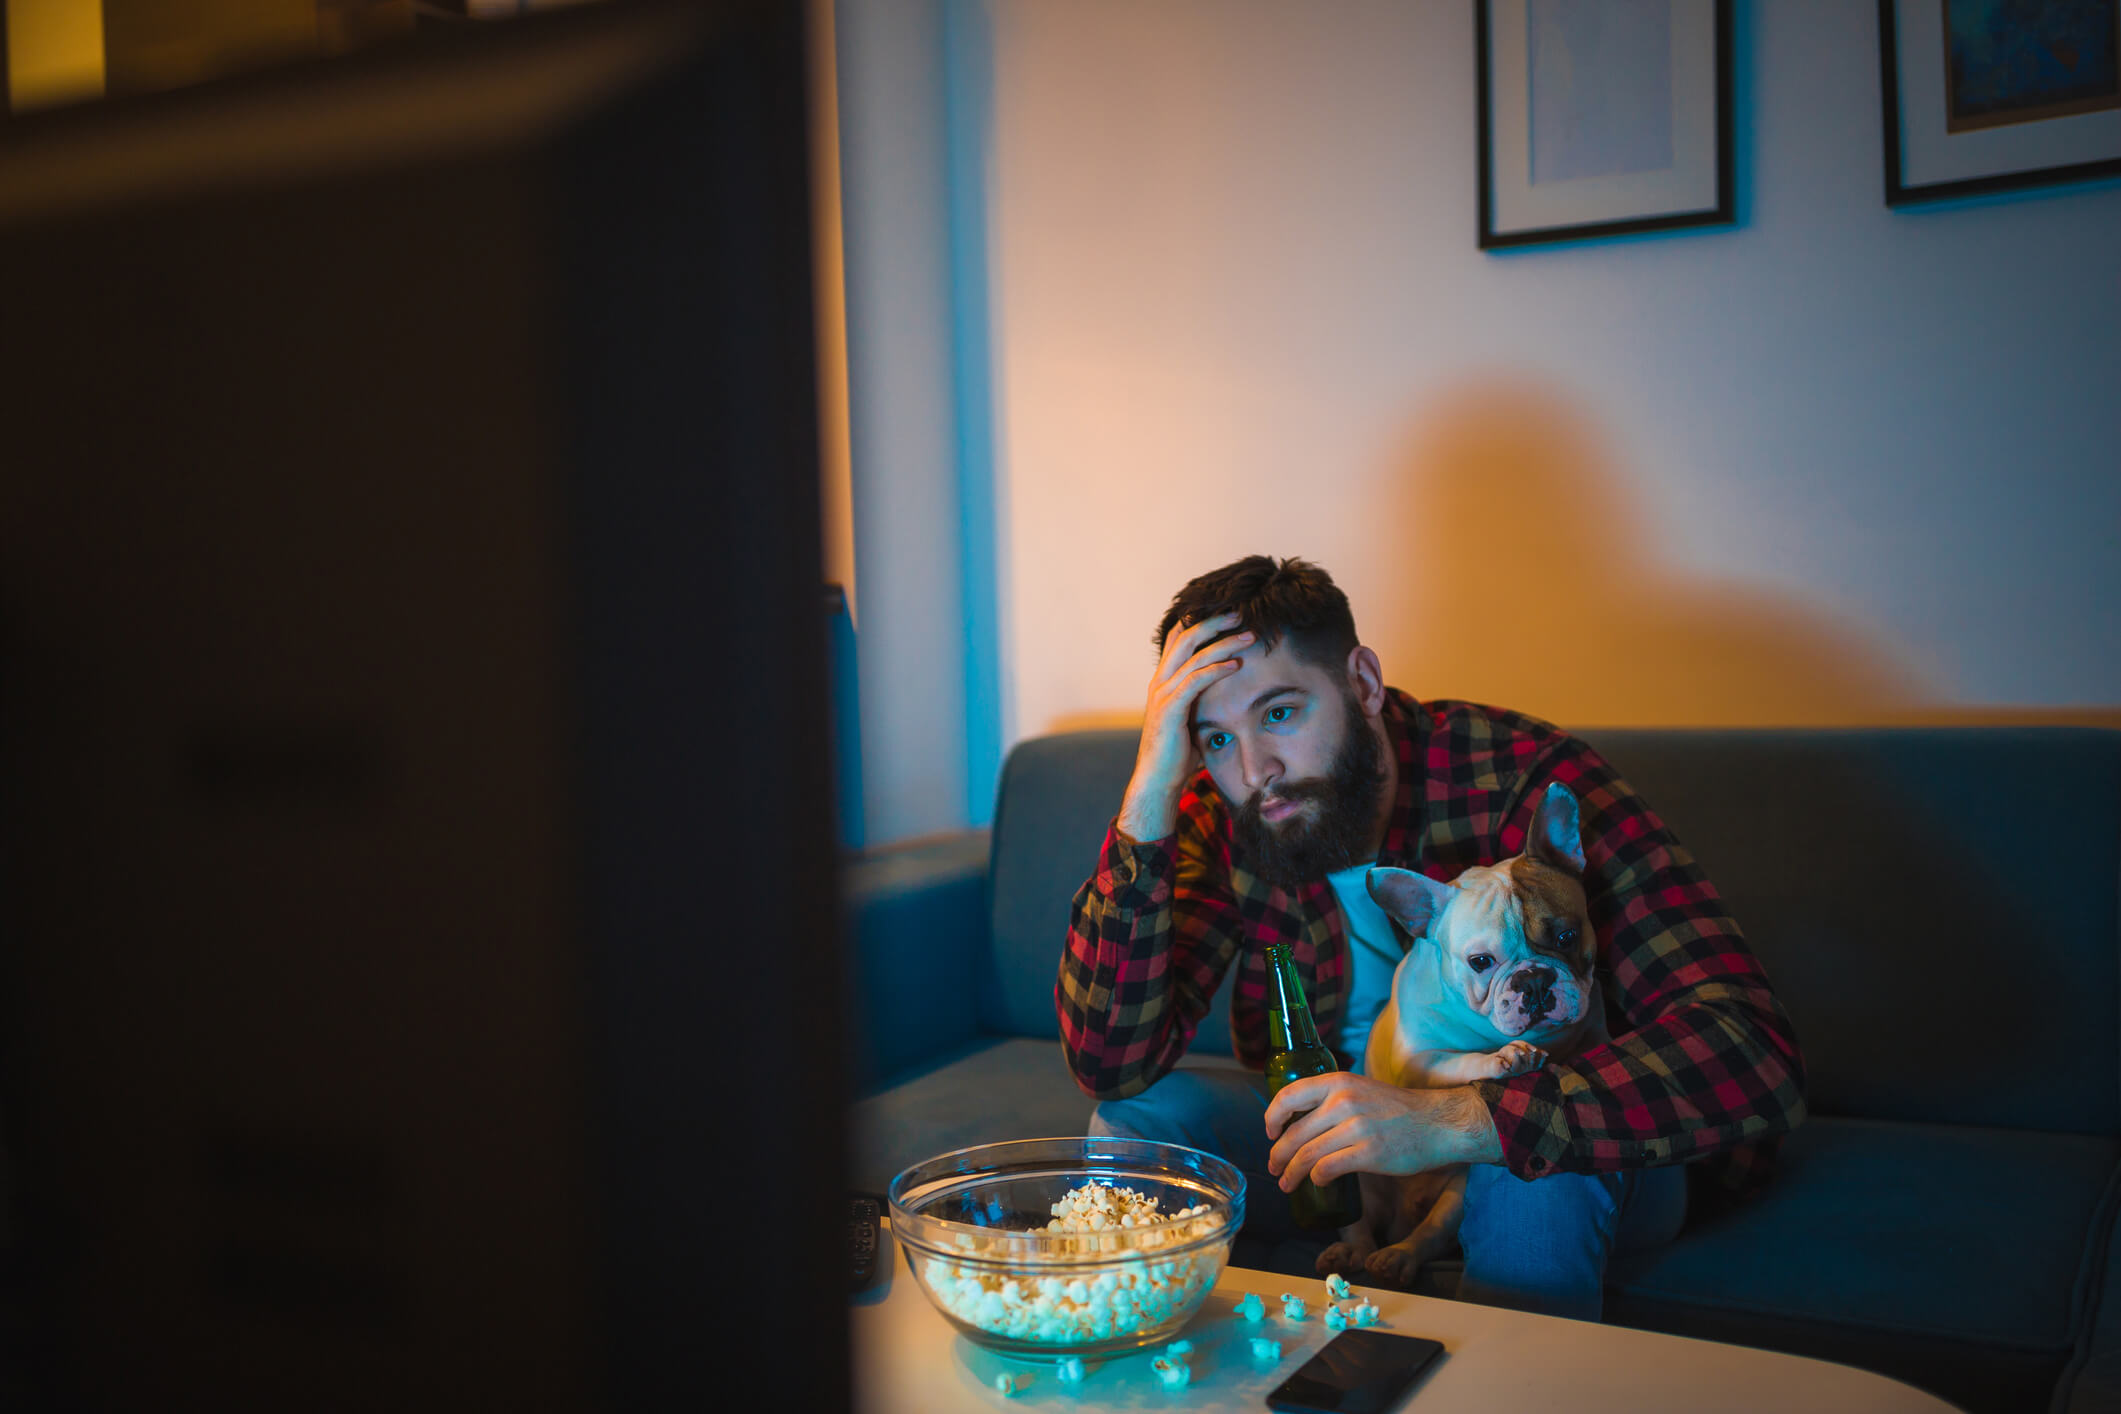 Man trying to watch Disney Plus with his dog